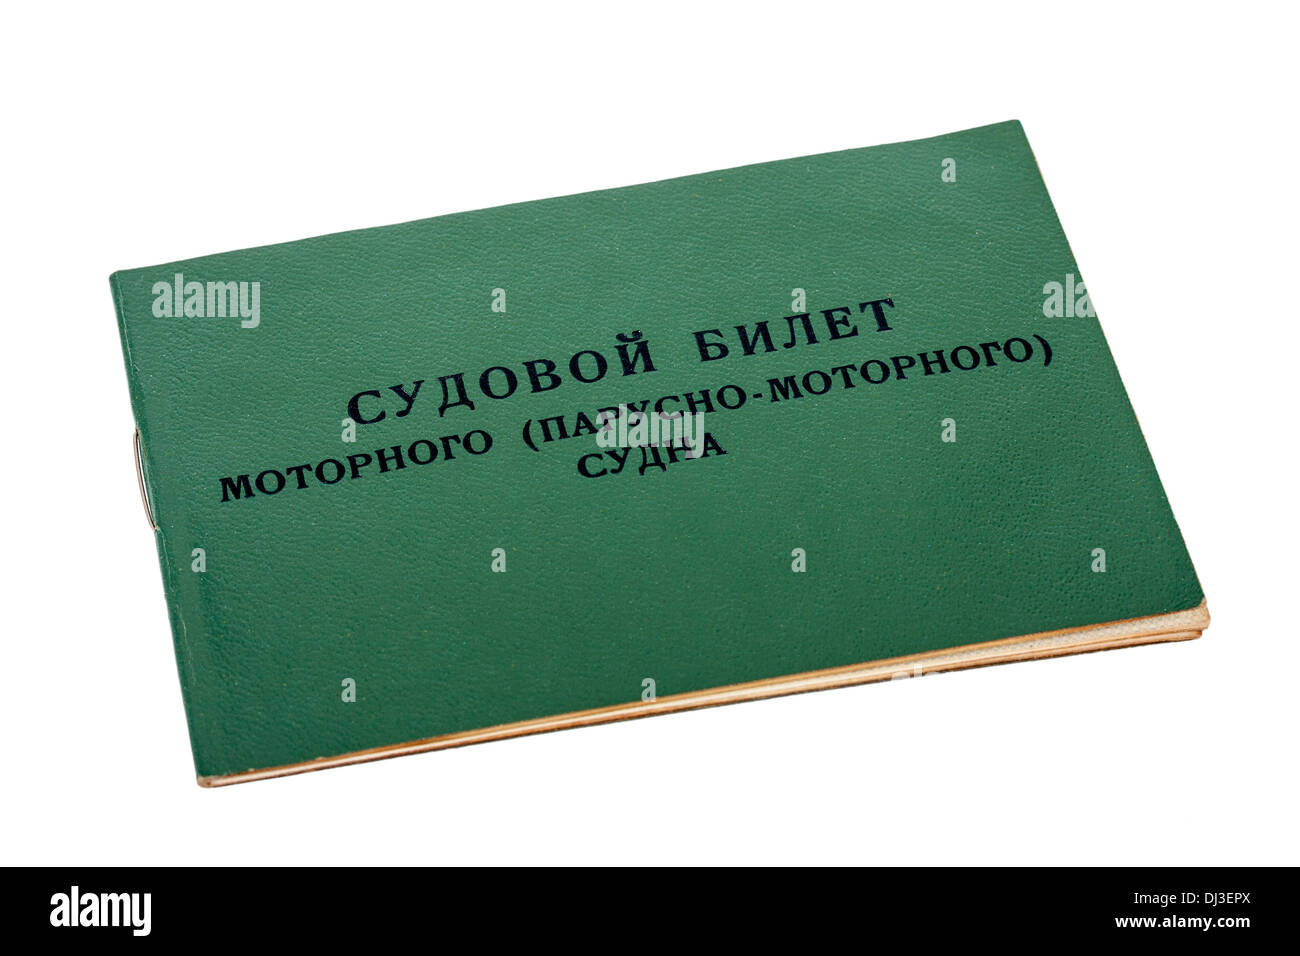 Russian ship ticket of motorized vessel isolated on white background - Stock Image